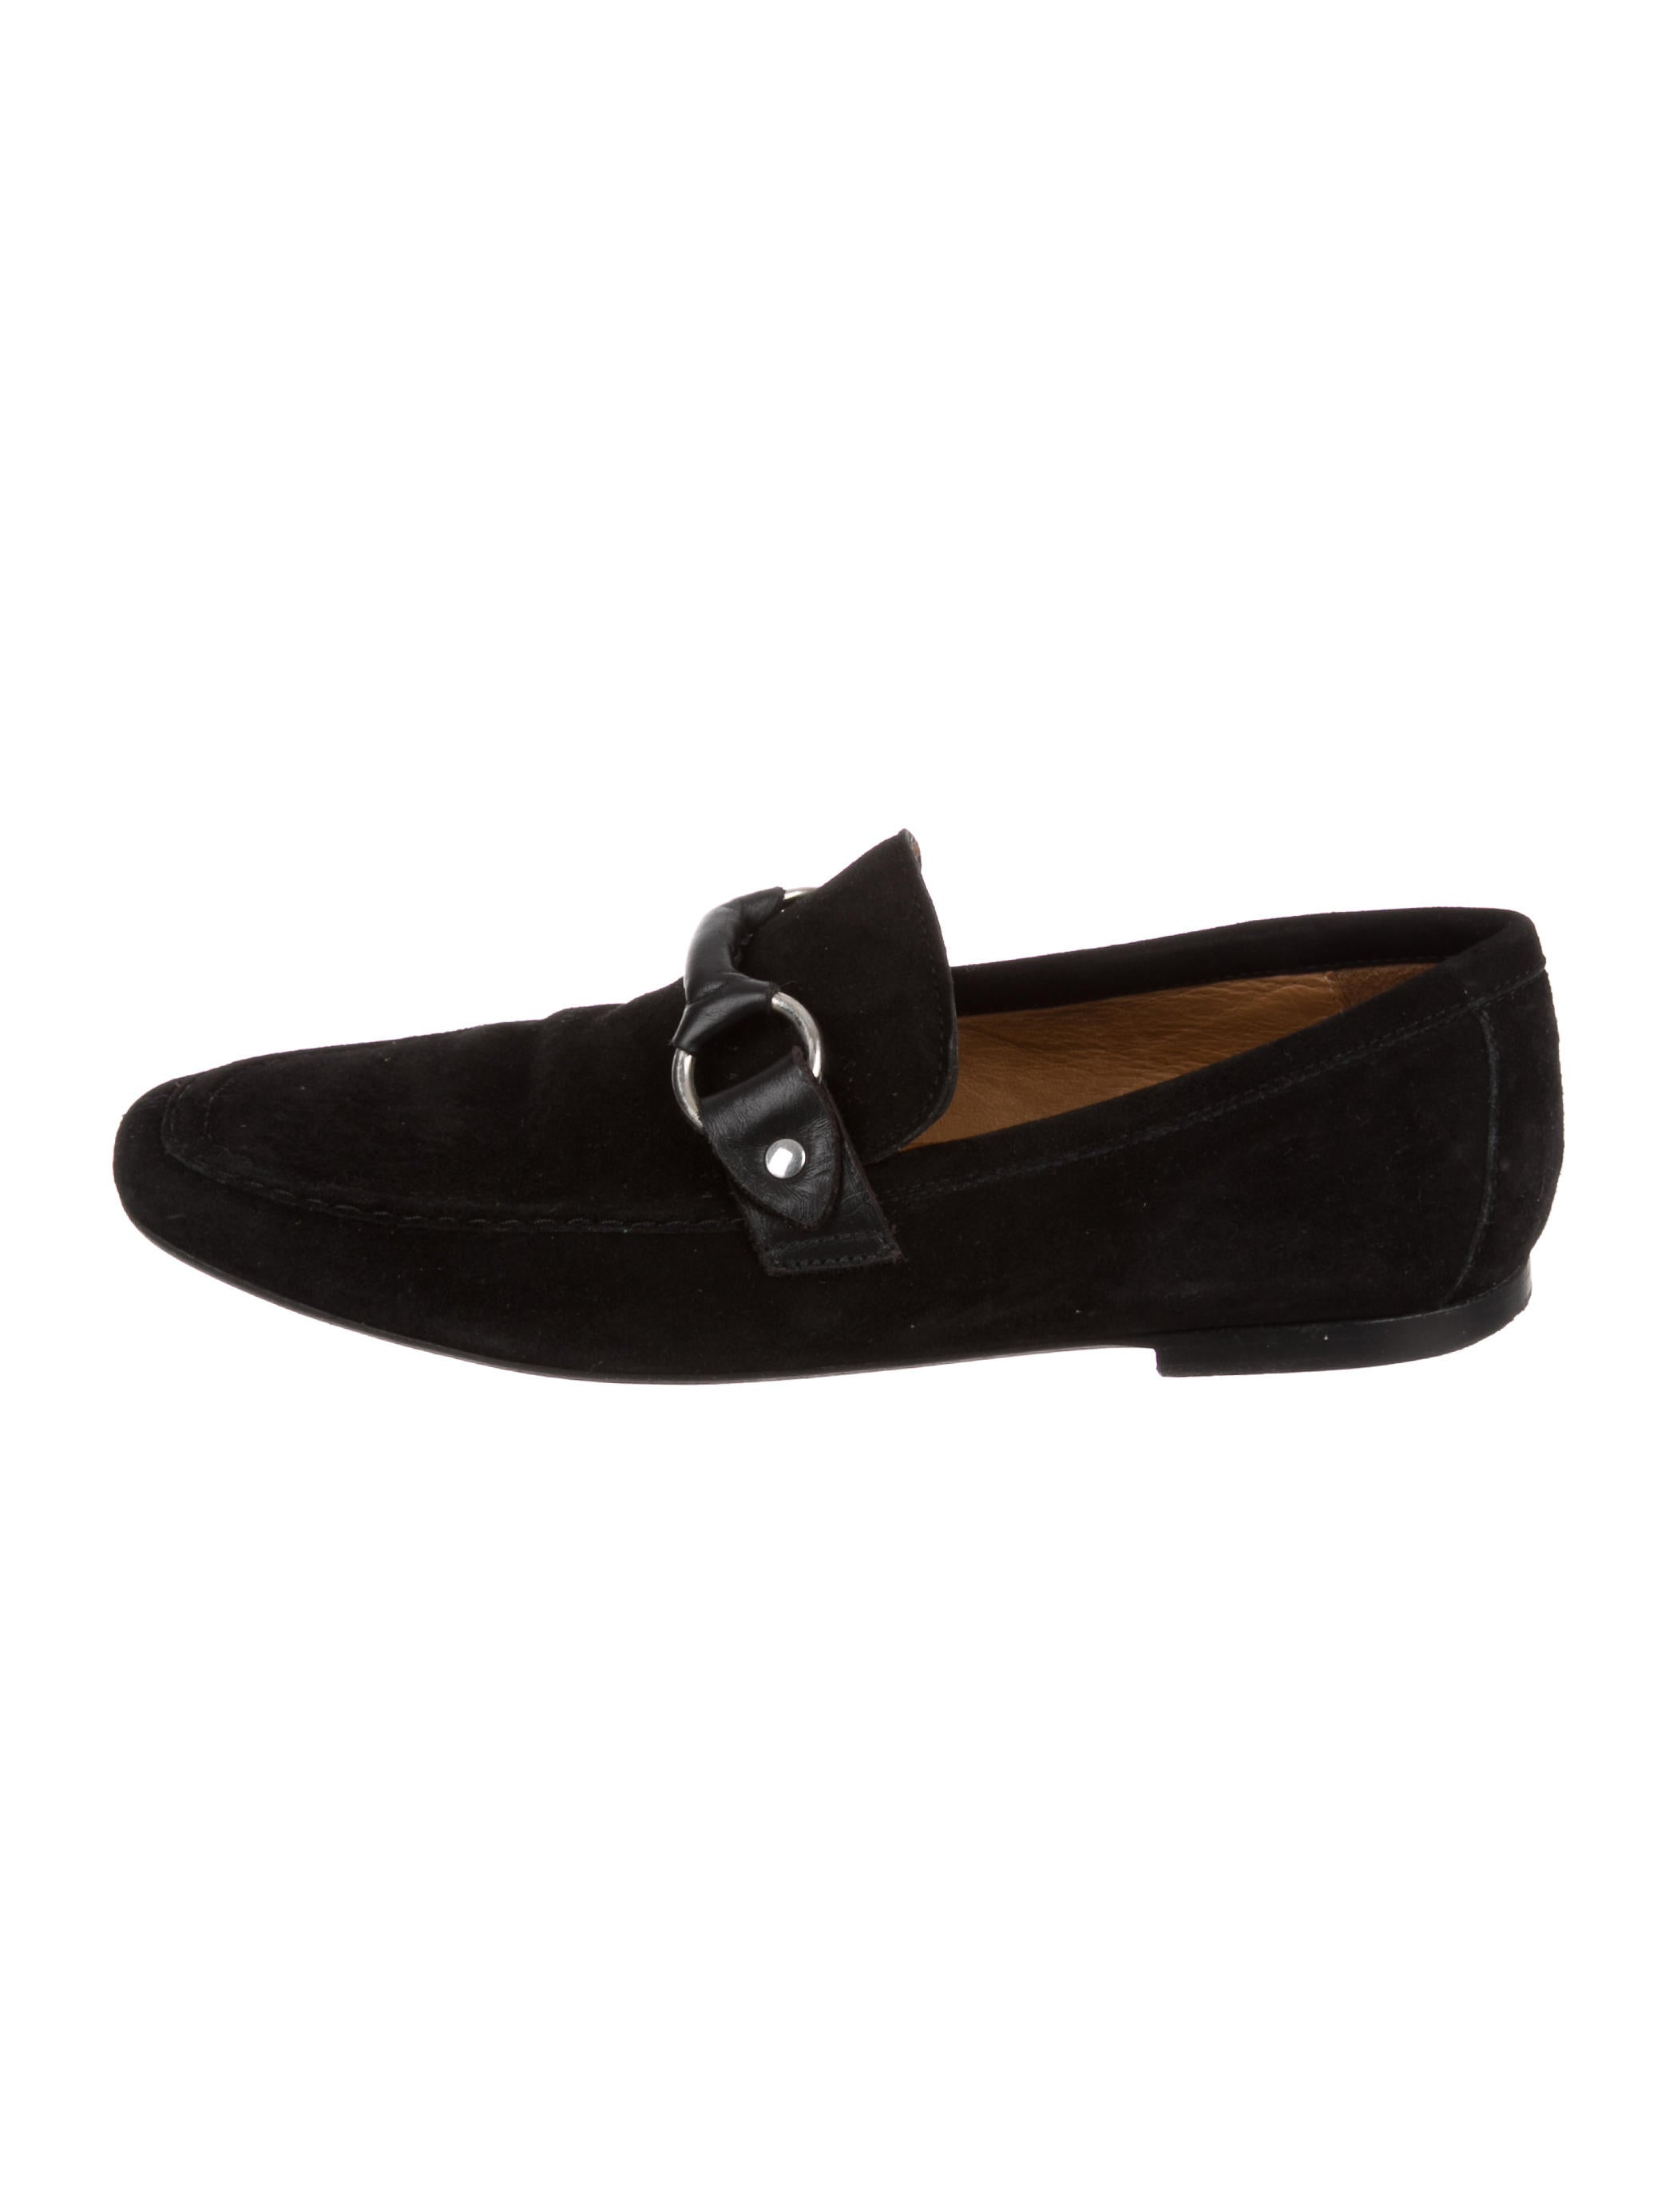 Isabel Marant Suede Square-Toe Loafers sale amazing price tREgW